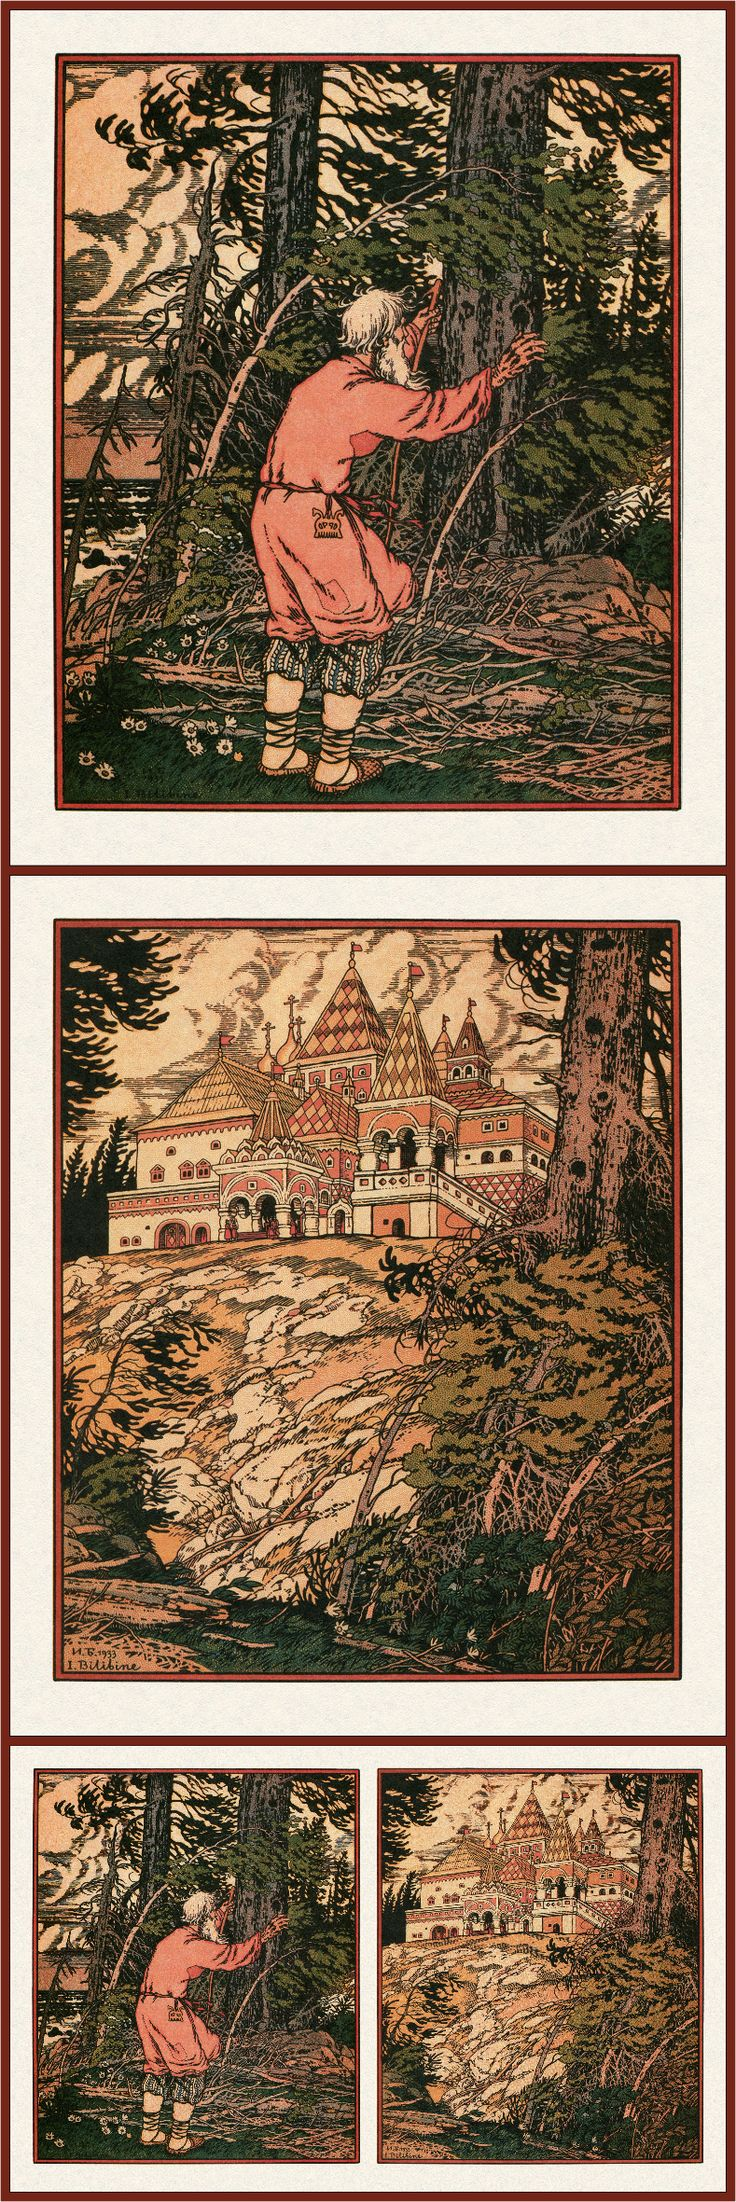 Ivan Bilibin, illustrations for Alexander Pushkin's The Fisherman and the Golden Fish, 1933.